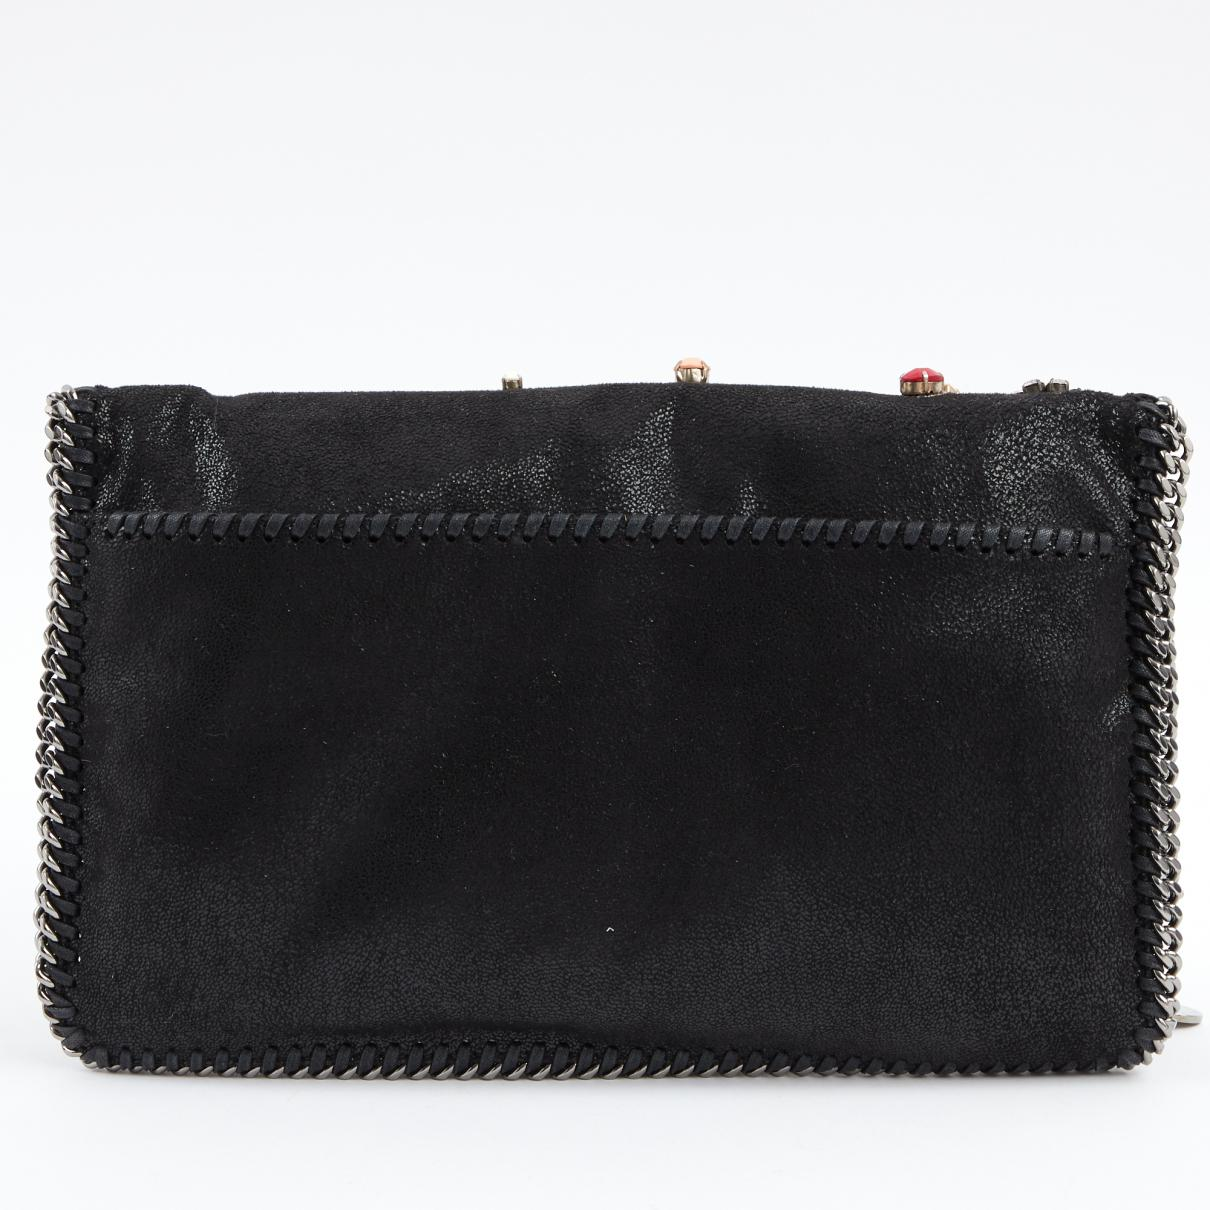 Stella McCartney Pre-owned - Falabella clutch bag ebHLlYkwto